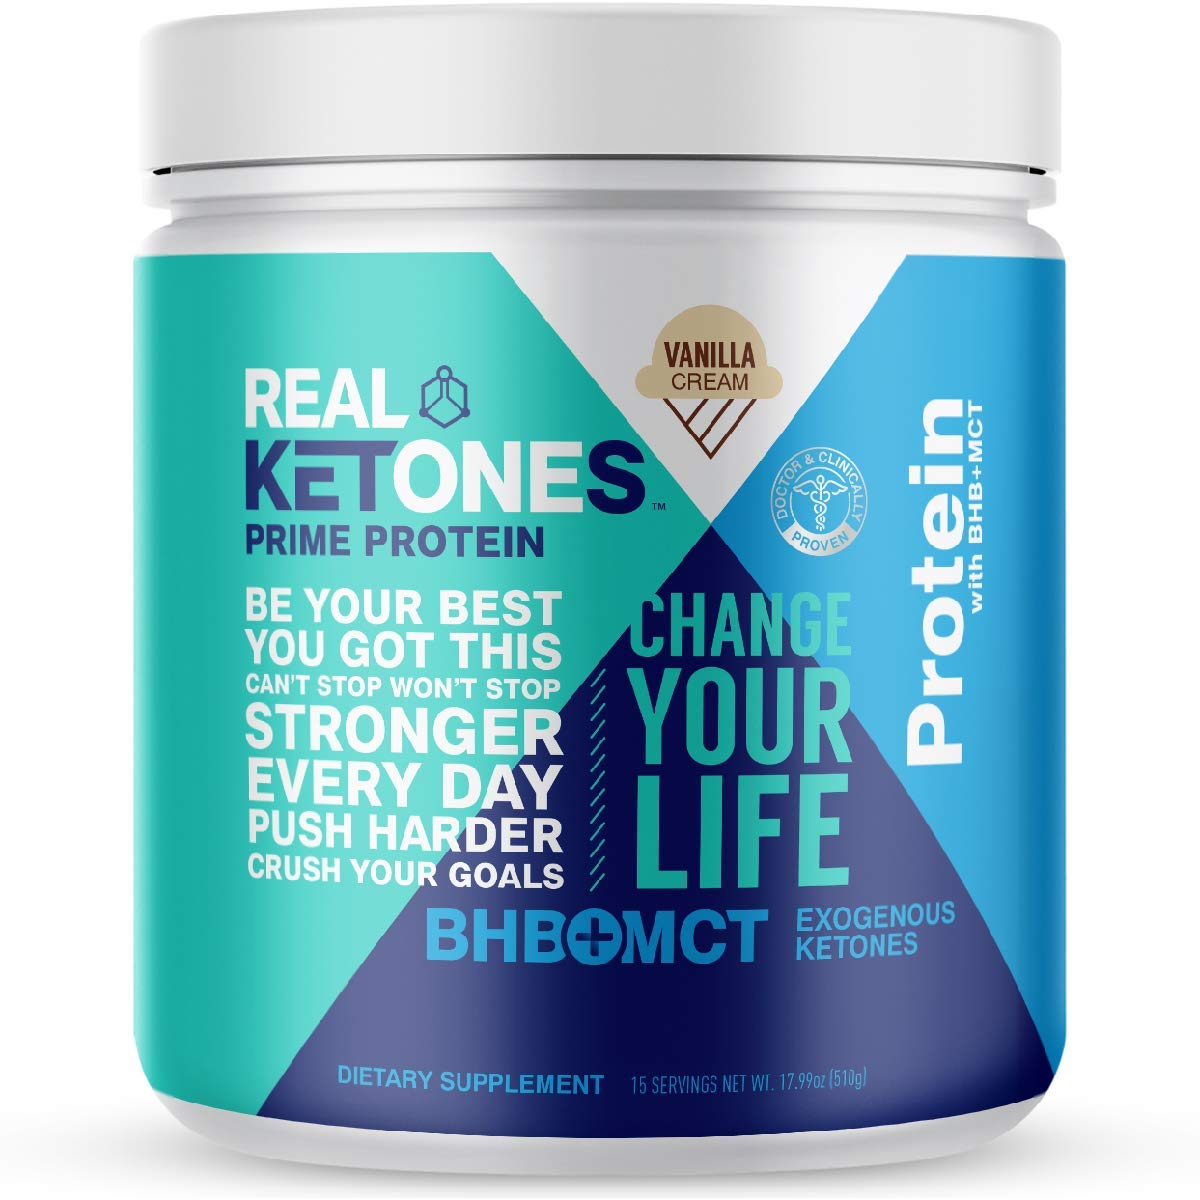 Real Ketones Whey Keto Protein Powder with Exogenous Ketones – Grass-fed Whey Isolate Protein, Paleo and Low-Carb Friendly, Vanilla Cr me